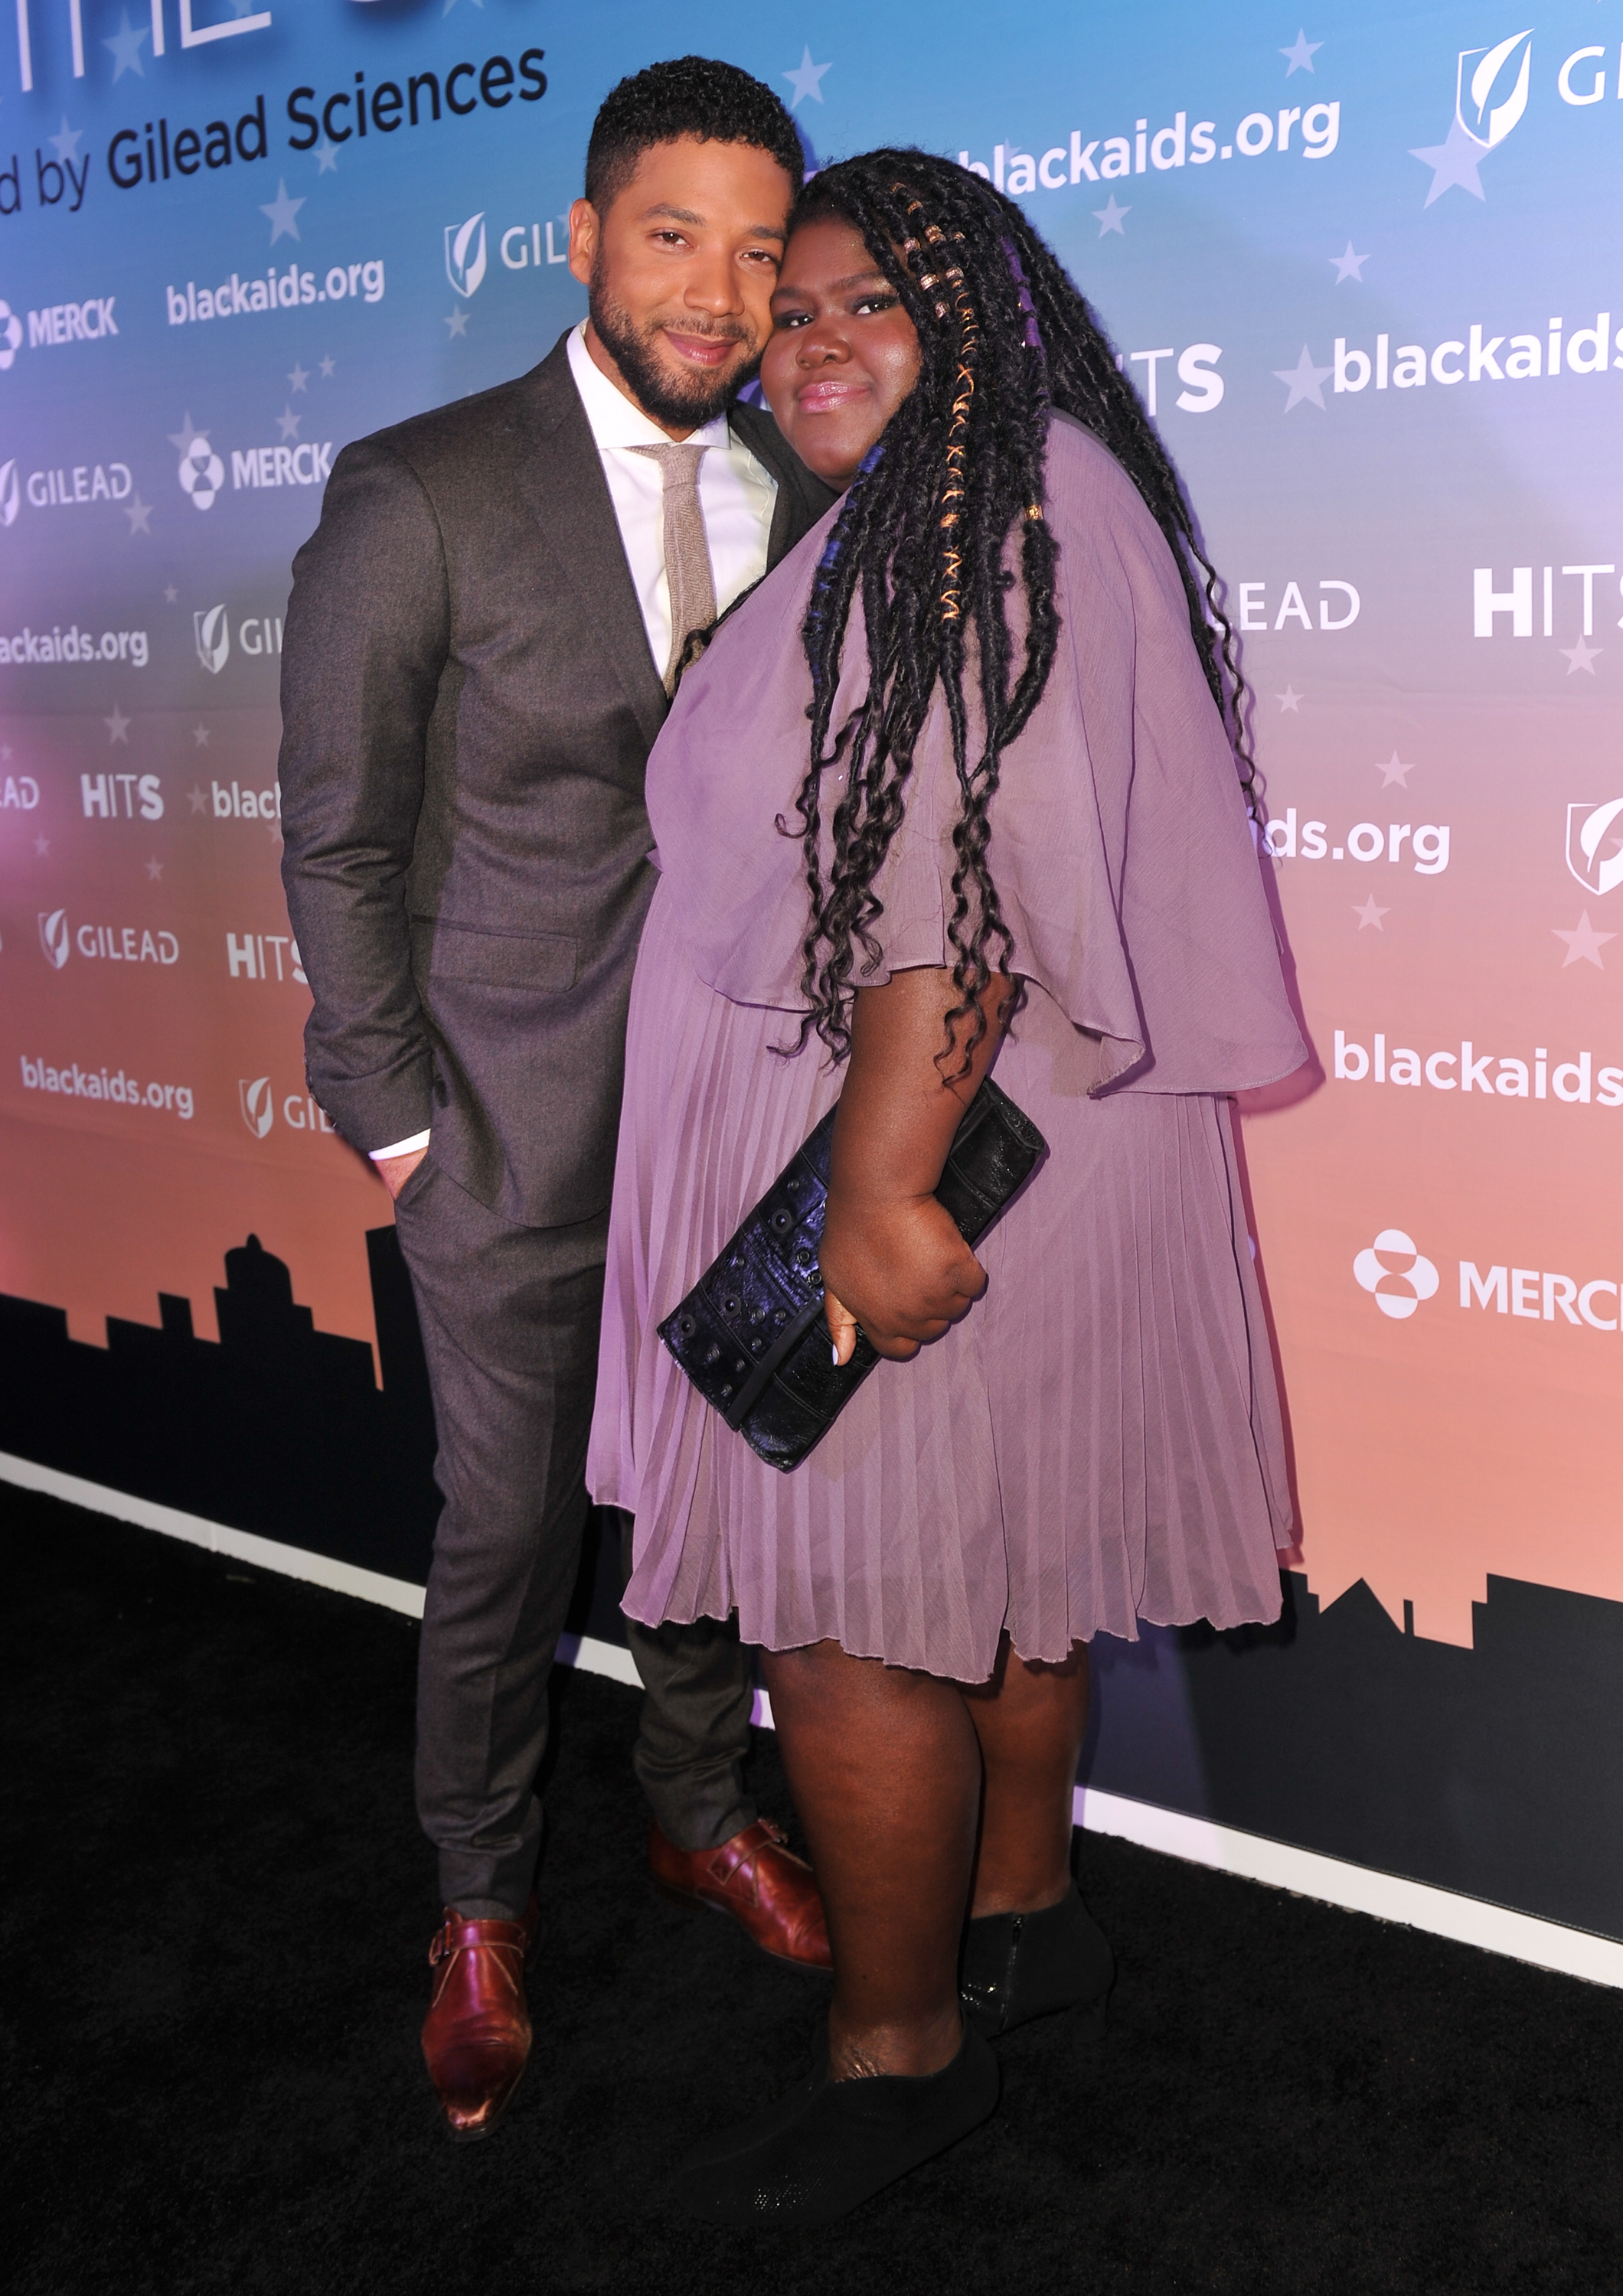 The Black AIDS Institute's 2018 Hosts Heroes in The Struggle Gala - Arrivals